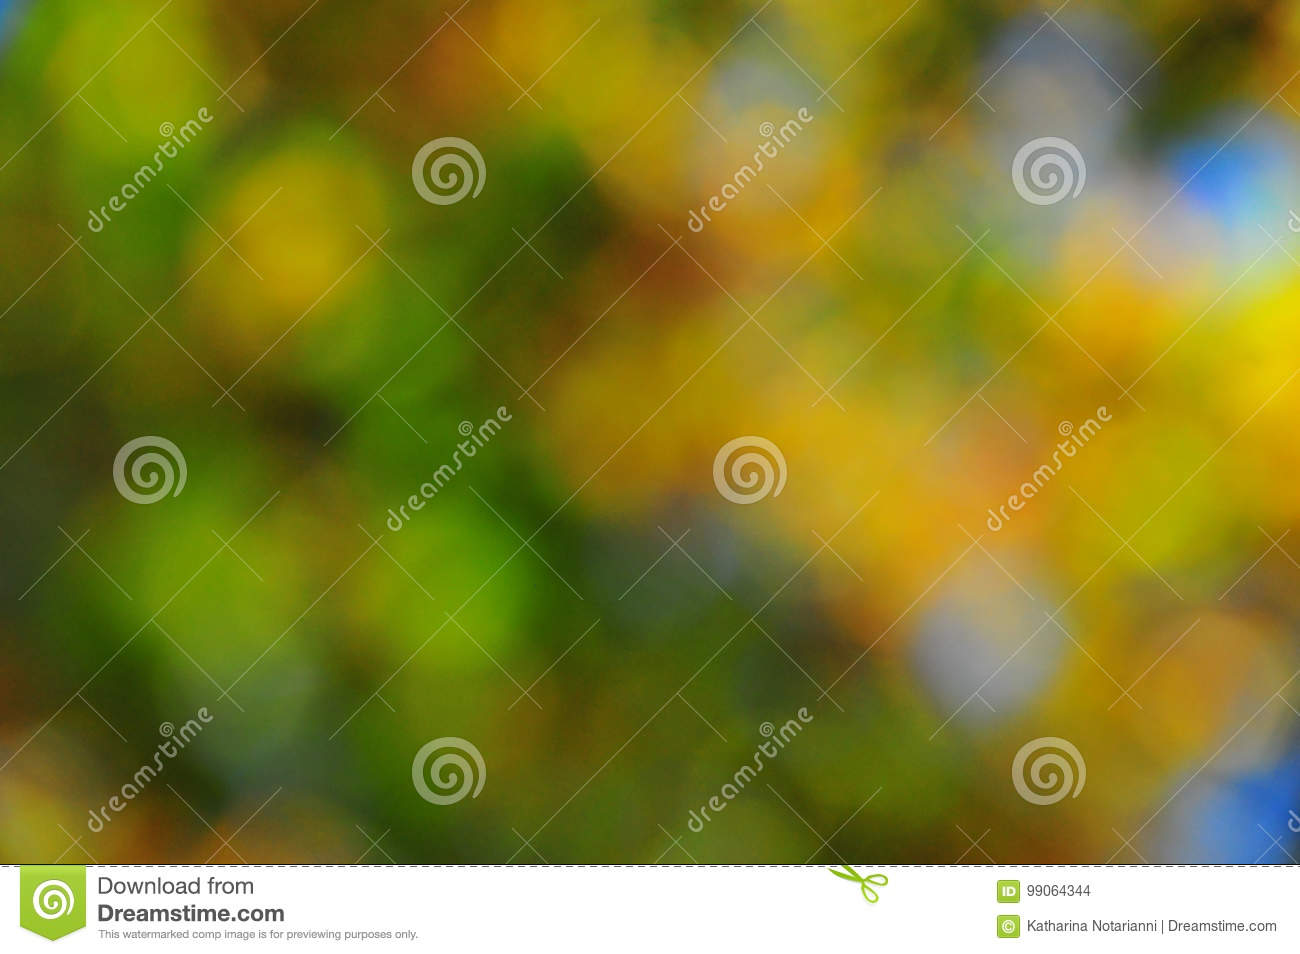 Abstract Mood Background in Brown Green Gold and Blue